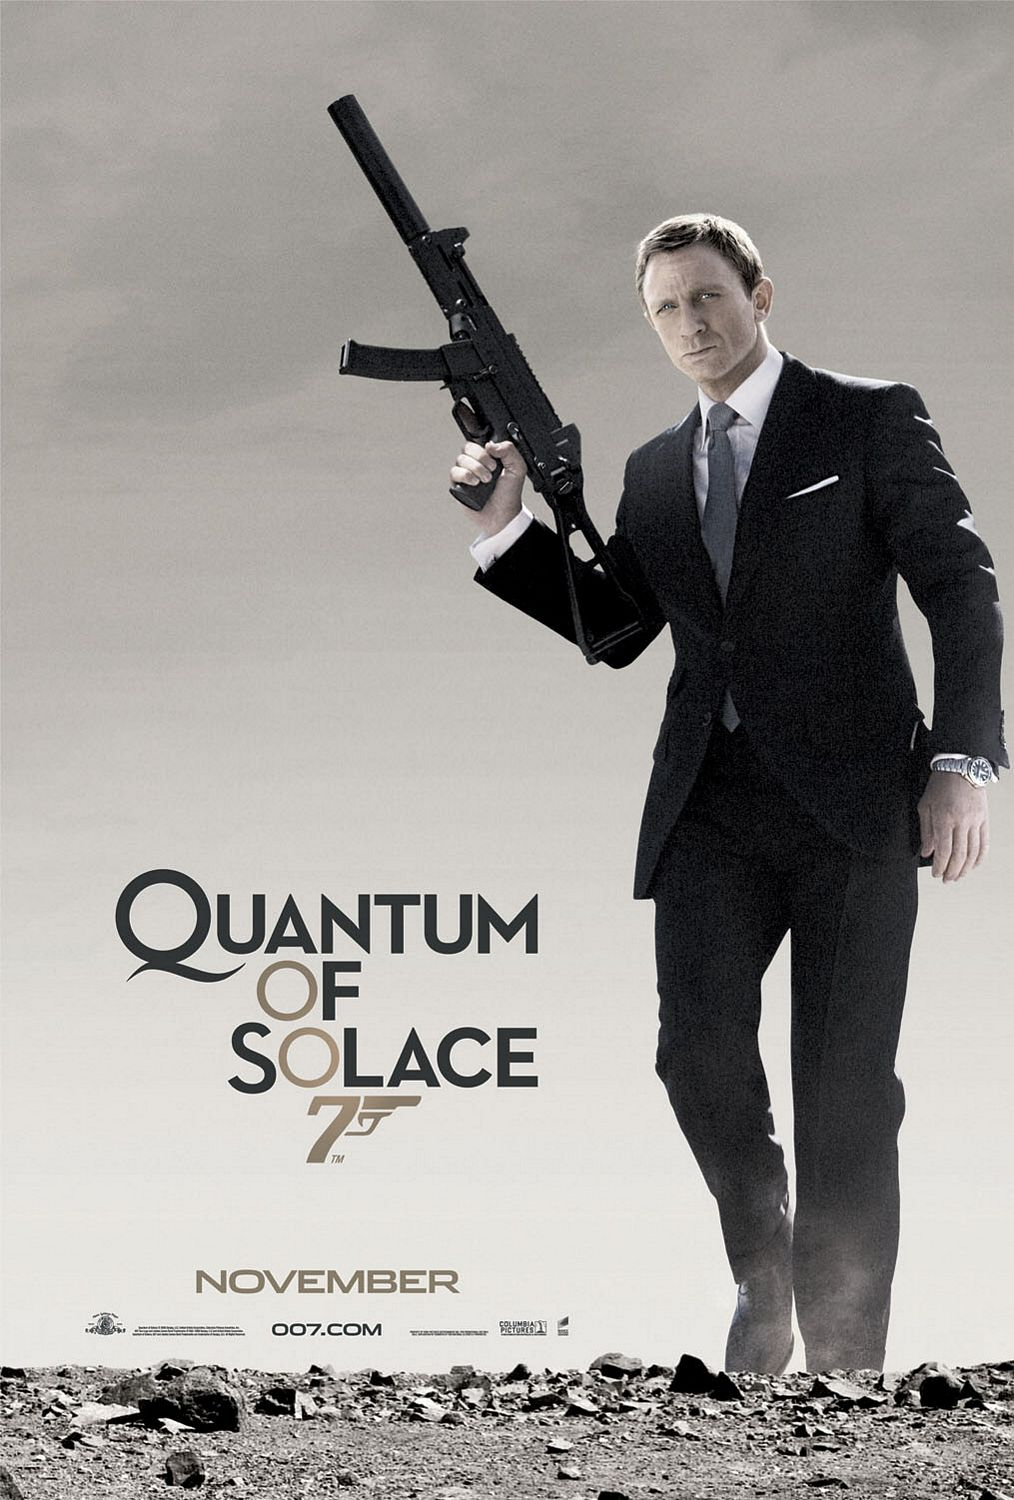 Quantum of Solace - February 2nd, 2019